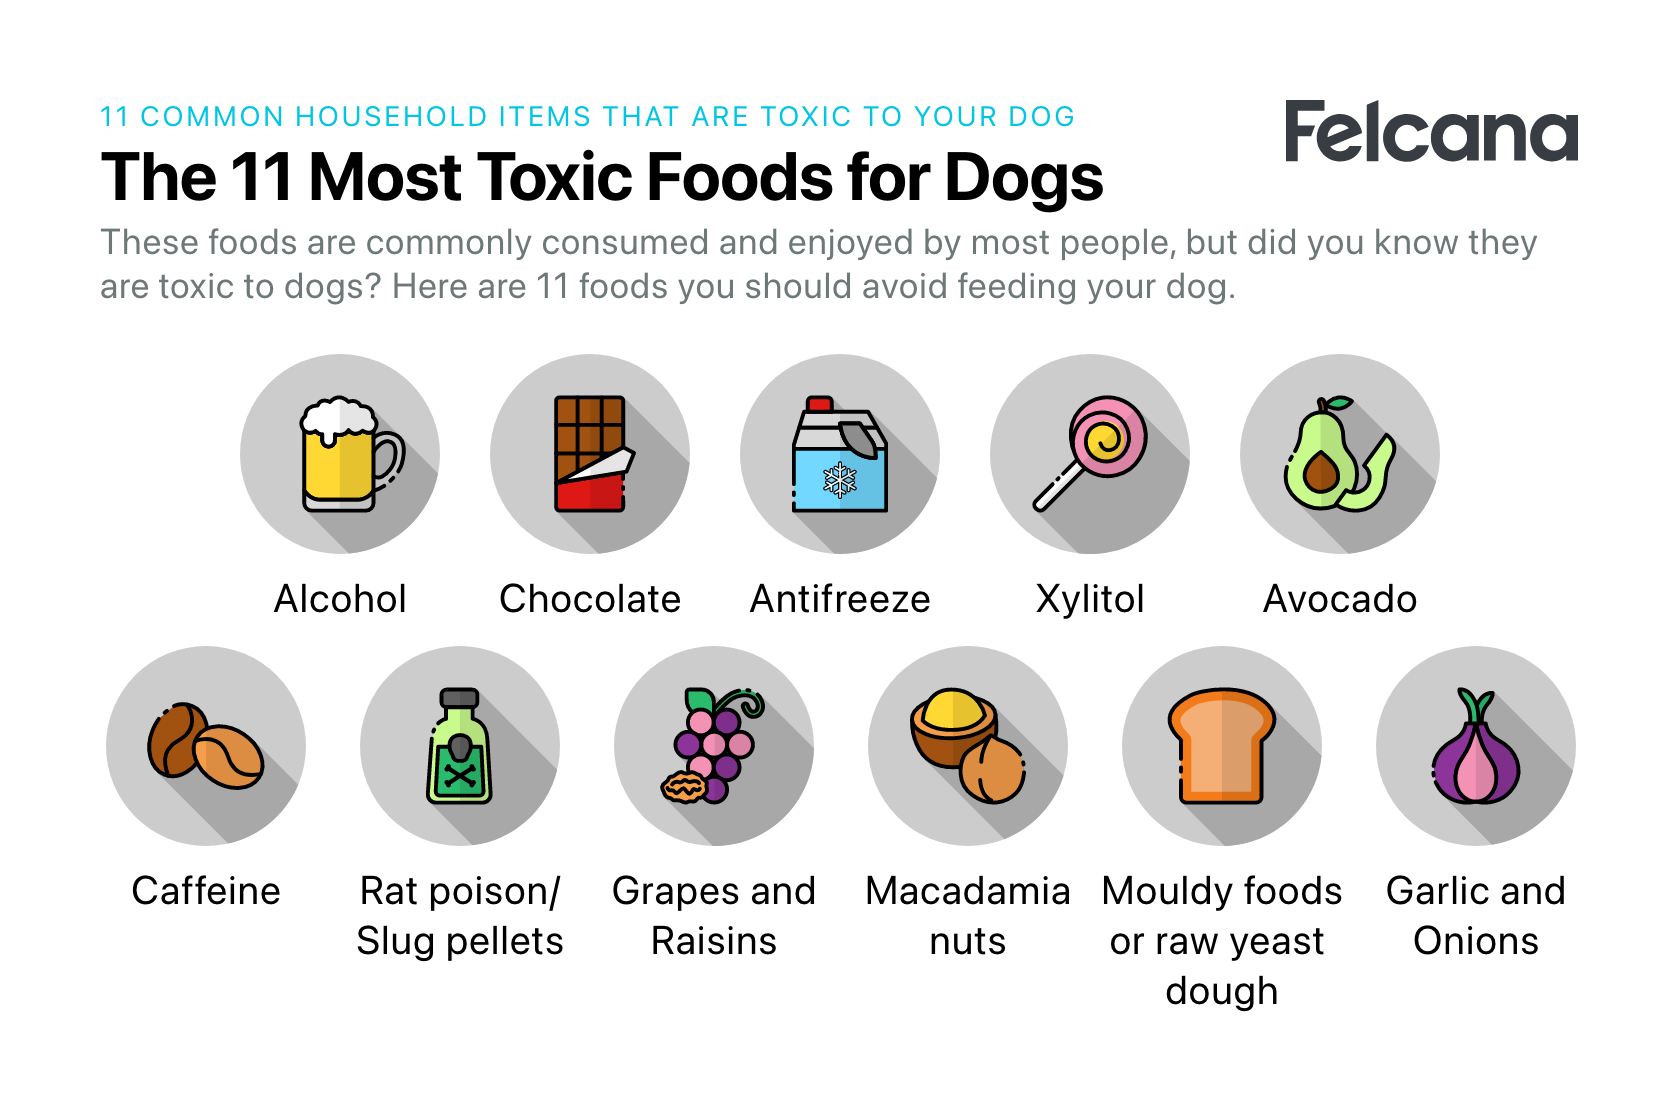 11 most toxic foods for dogs including chocolate, alcohol and avocados